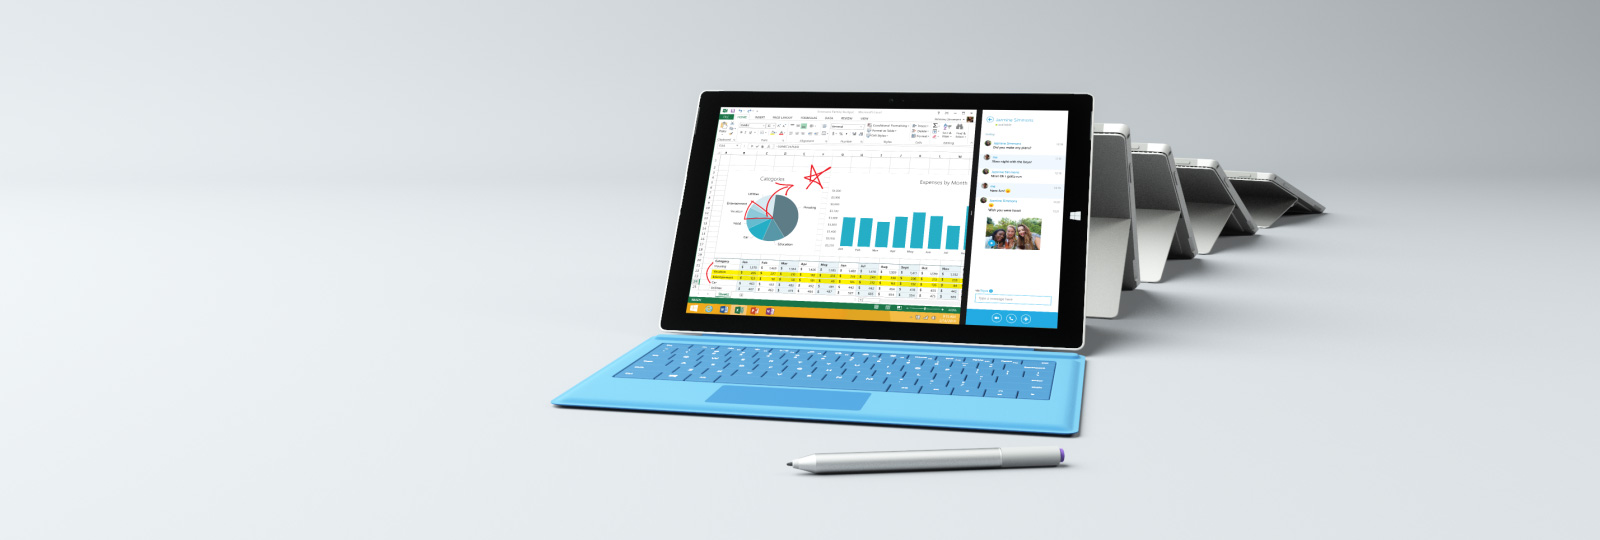 Introducing the new Surface Pro 3. Shop now.